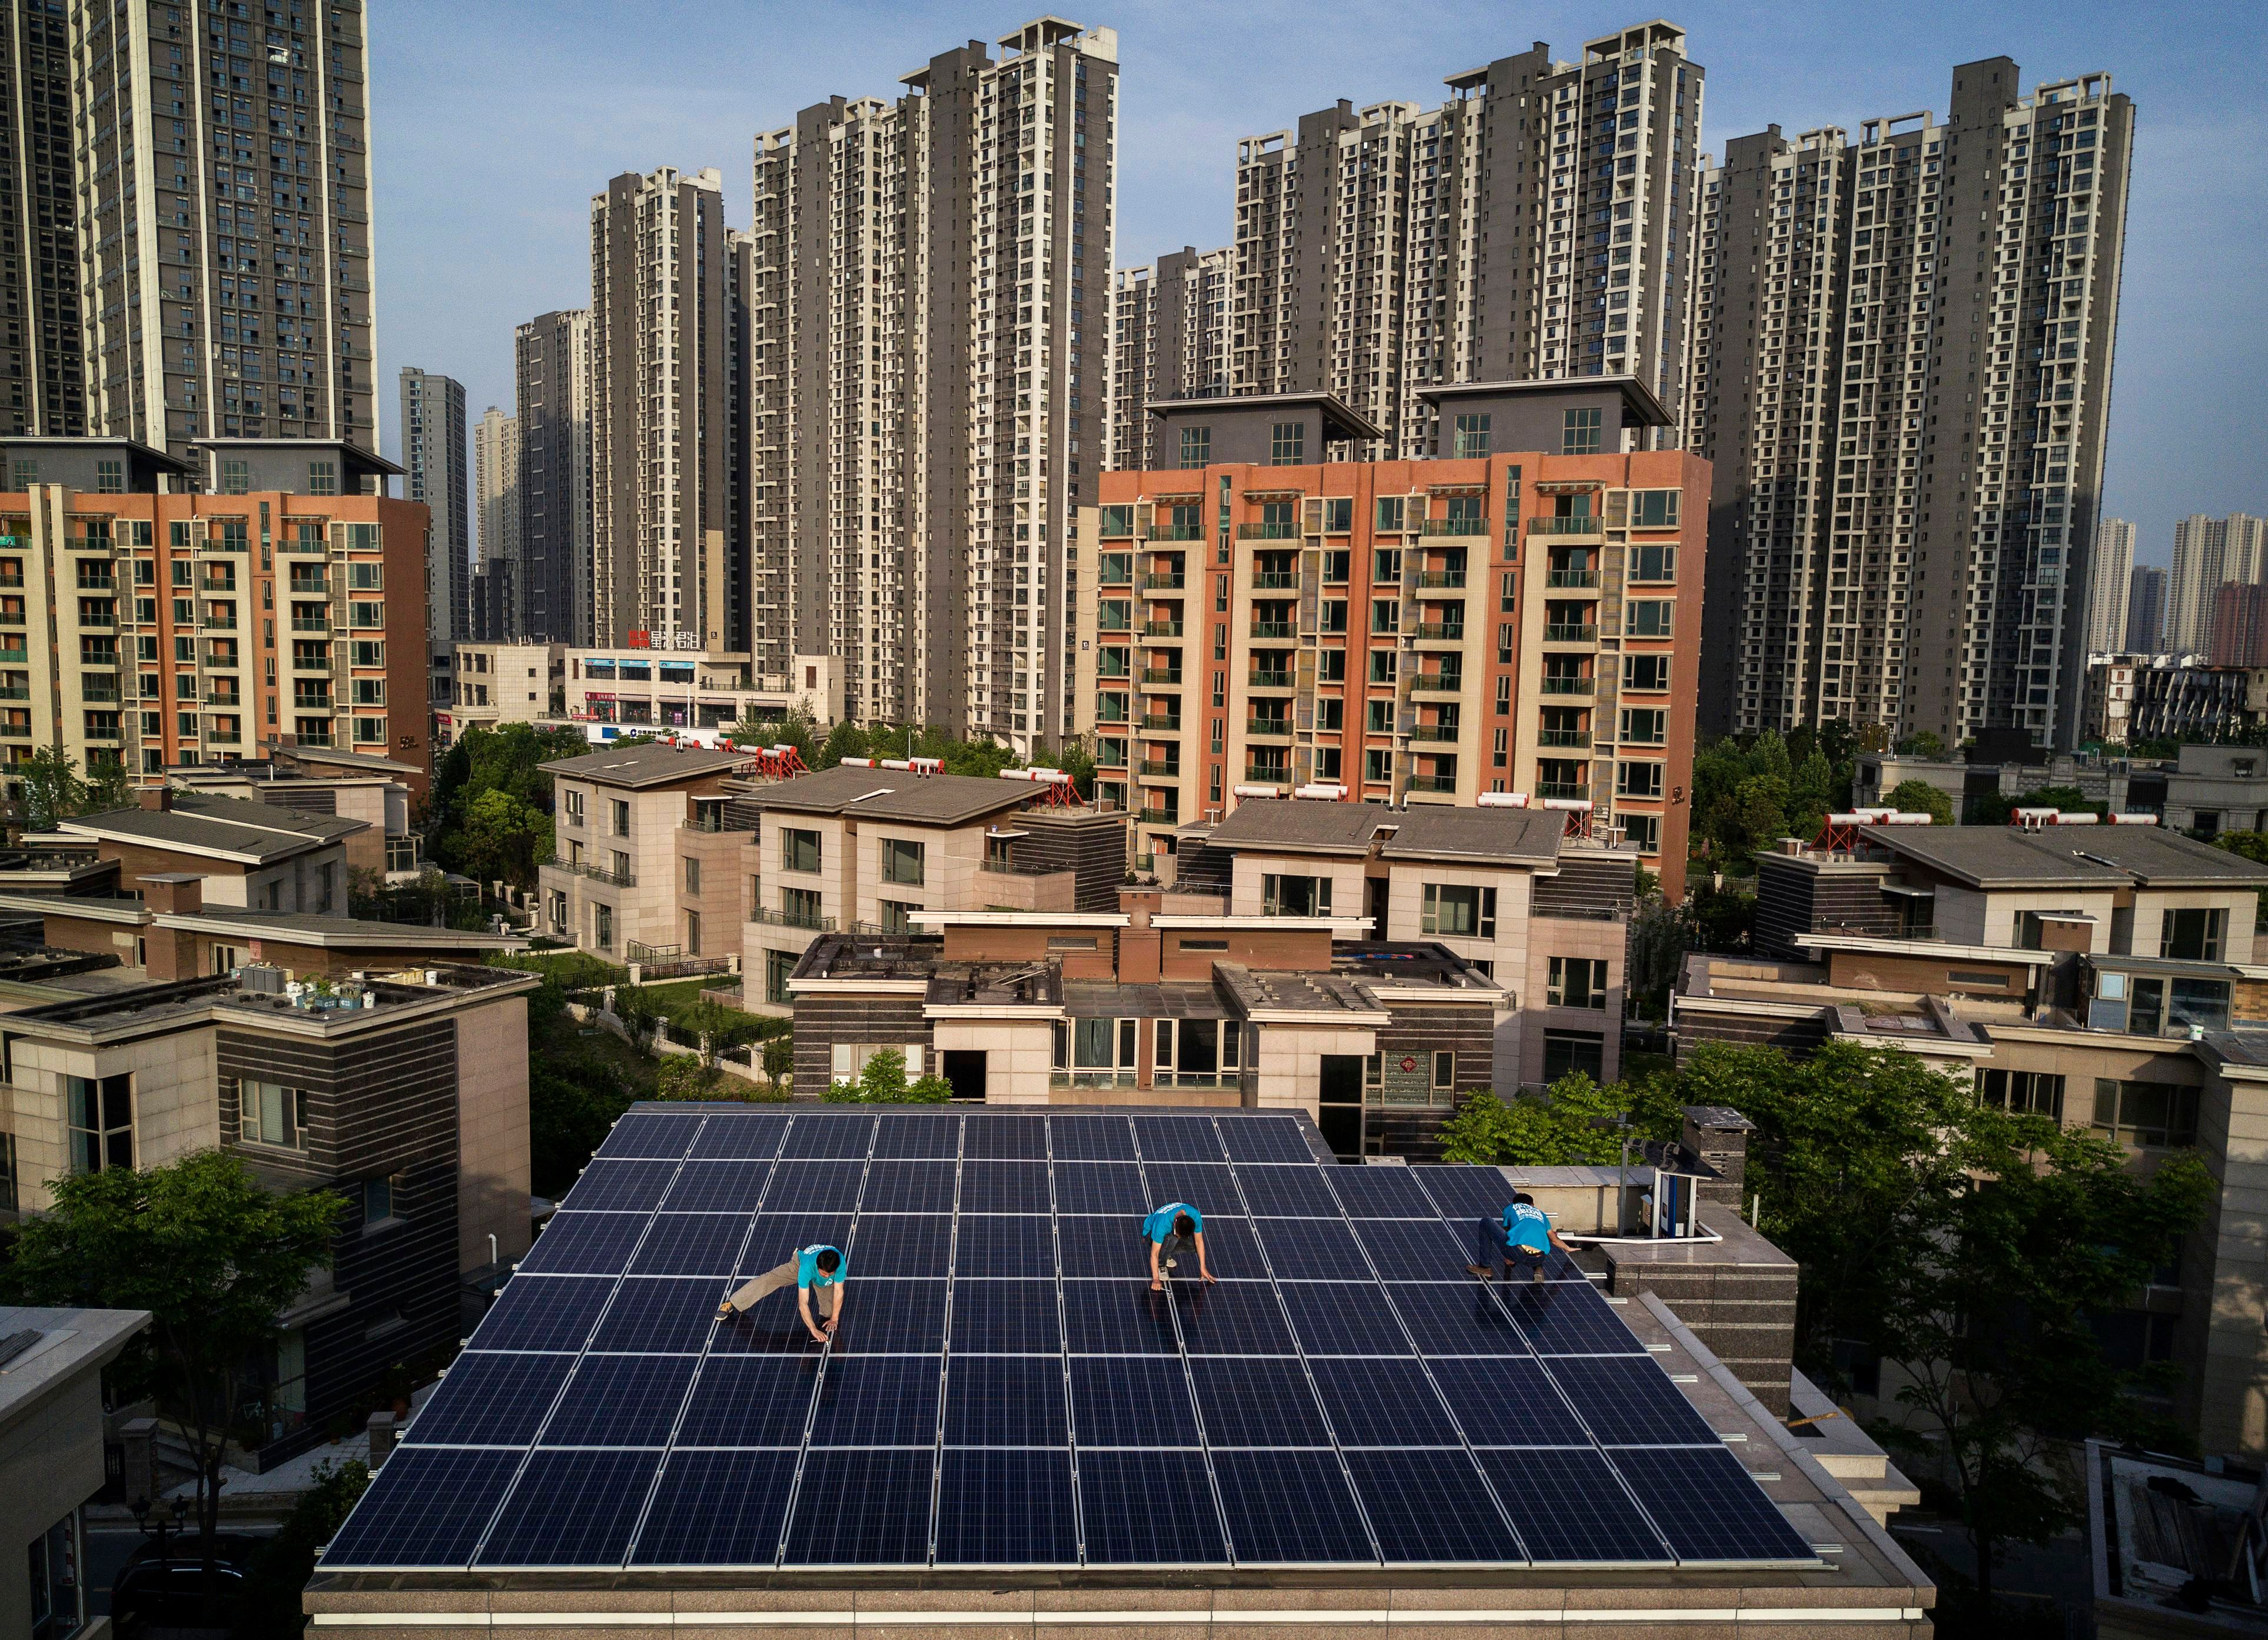 Workers from Wuhan Guangsheng Photovoltaic Company install solar panels on the roof of a building in Wuhan, China. In Au